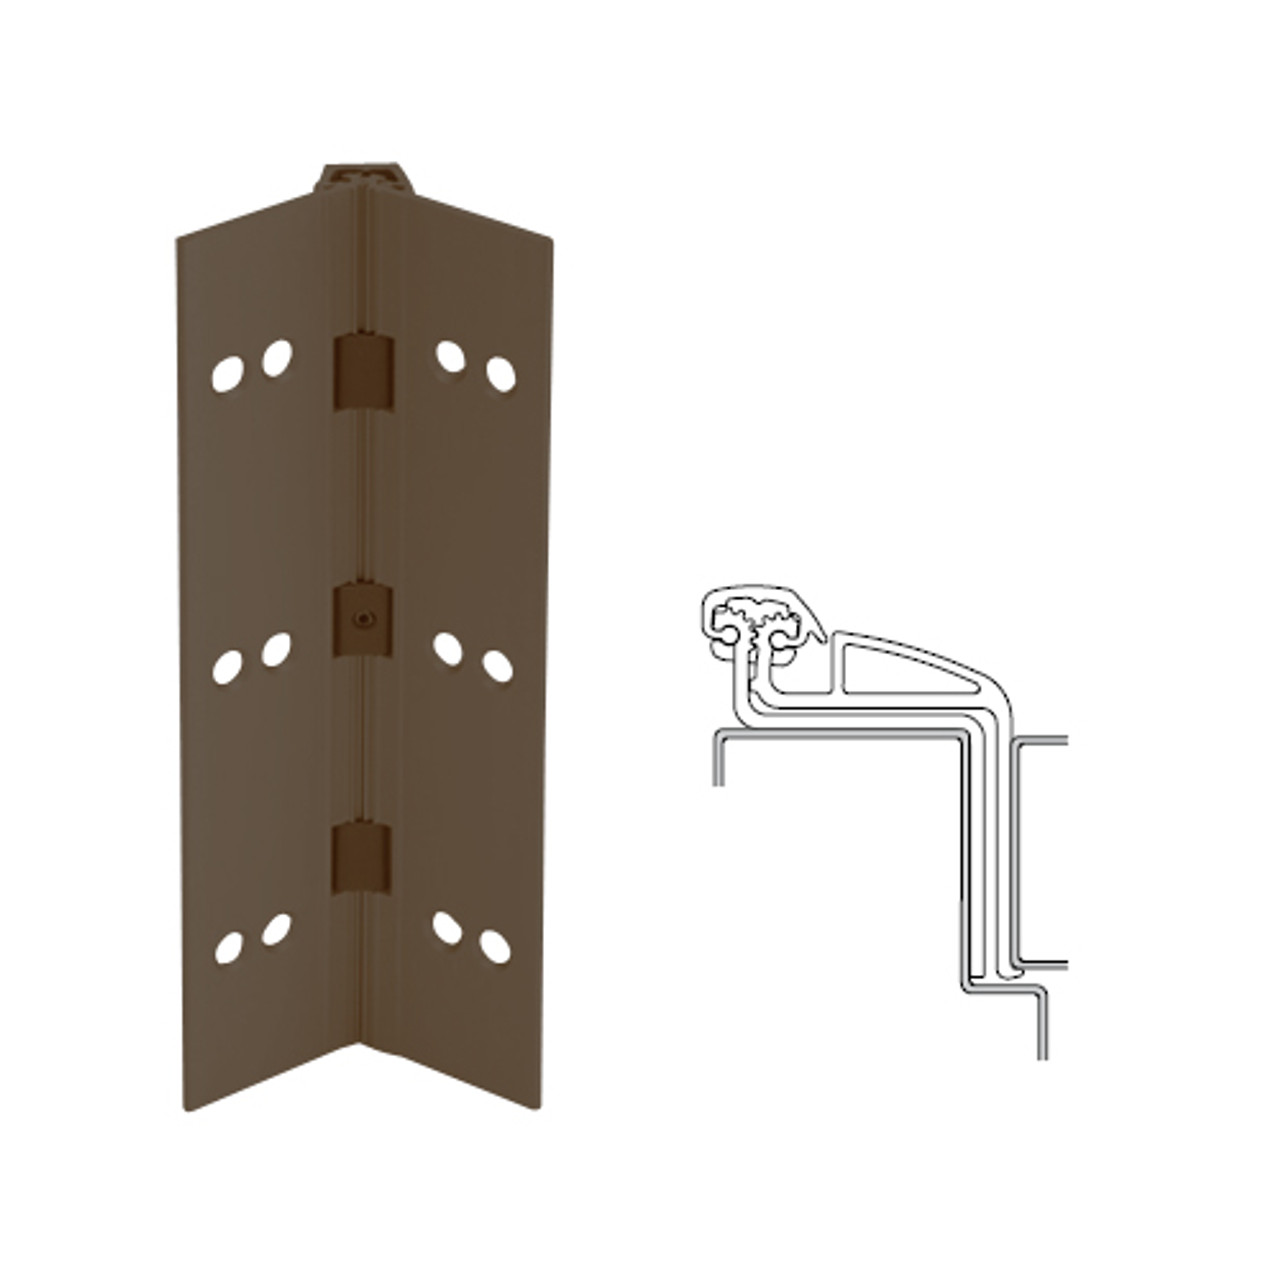 041XY-313AN-85-WD IVES Full Mortise Continuous Geared Hinges with Wood Screws in Dark Bronze Anodized